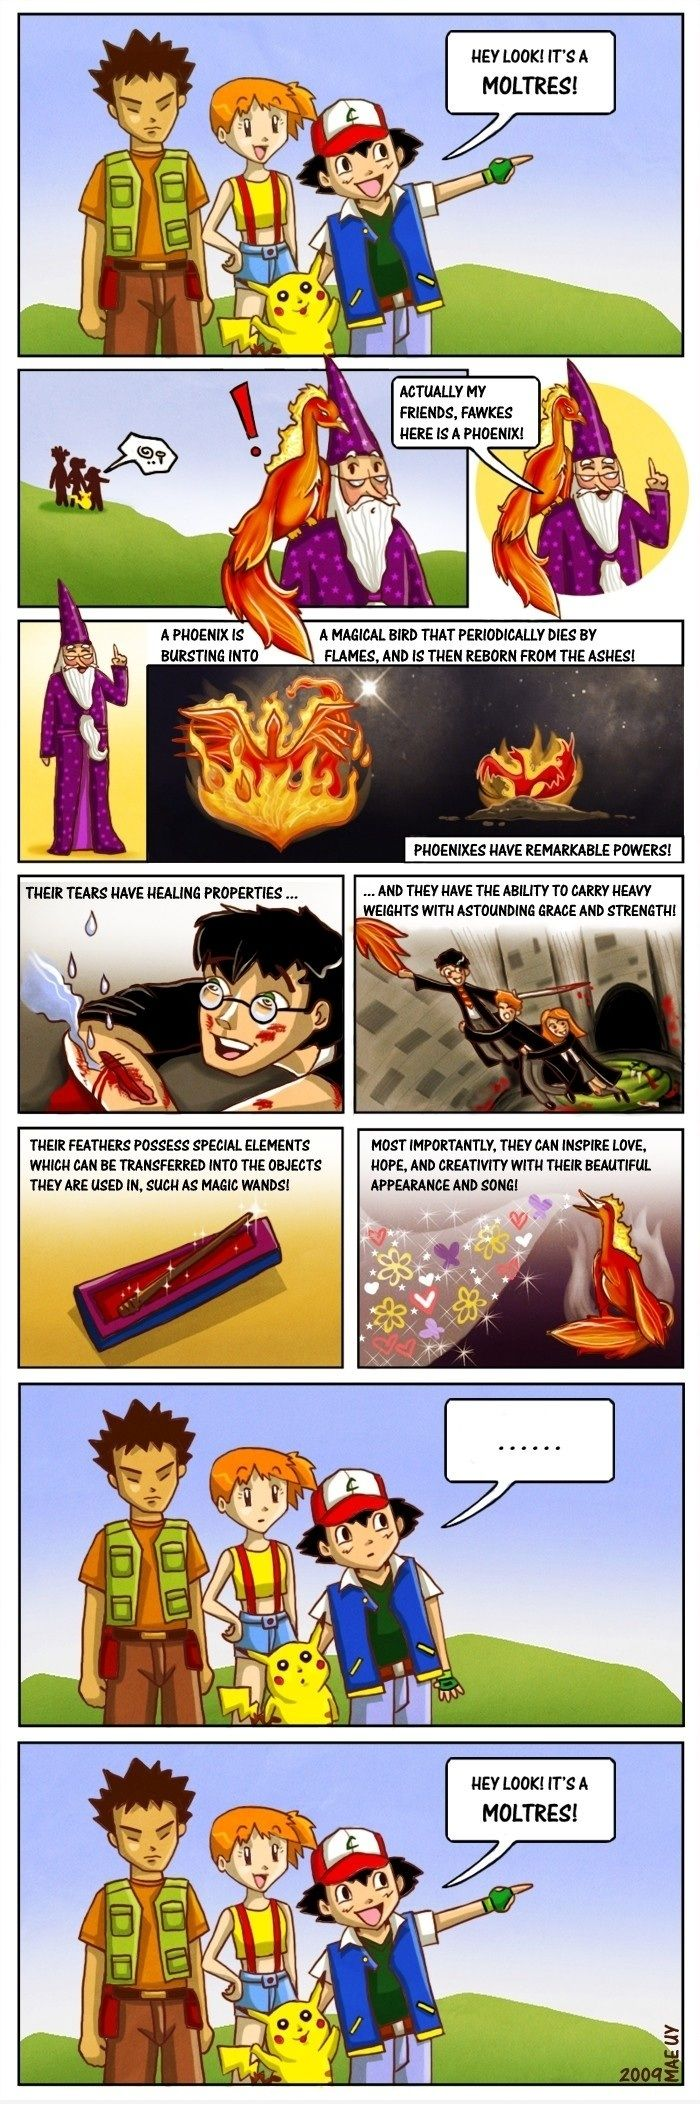 Hey look! Its a Moltres! - funny pictures - funny photos - funny images - funny pics - funny quotes - funny animals @ humor